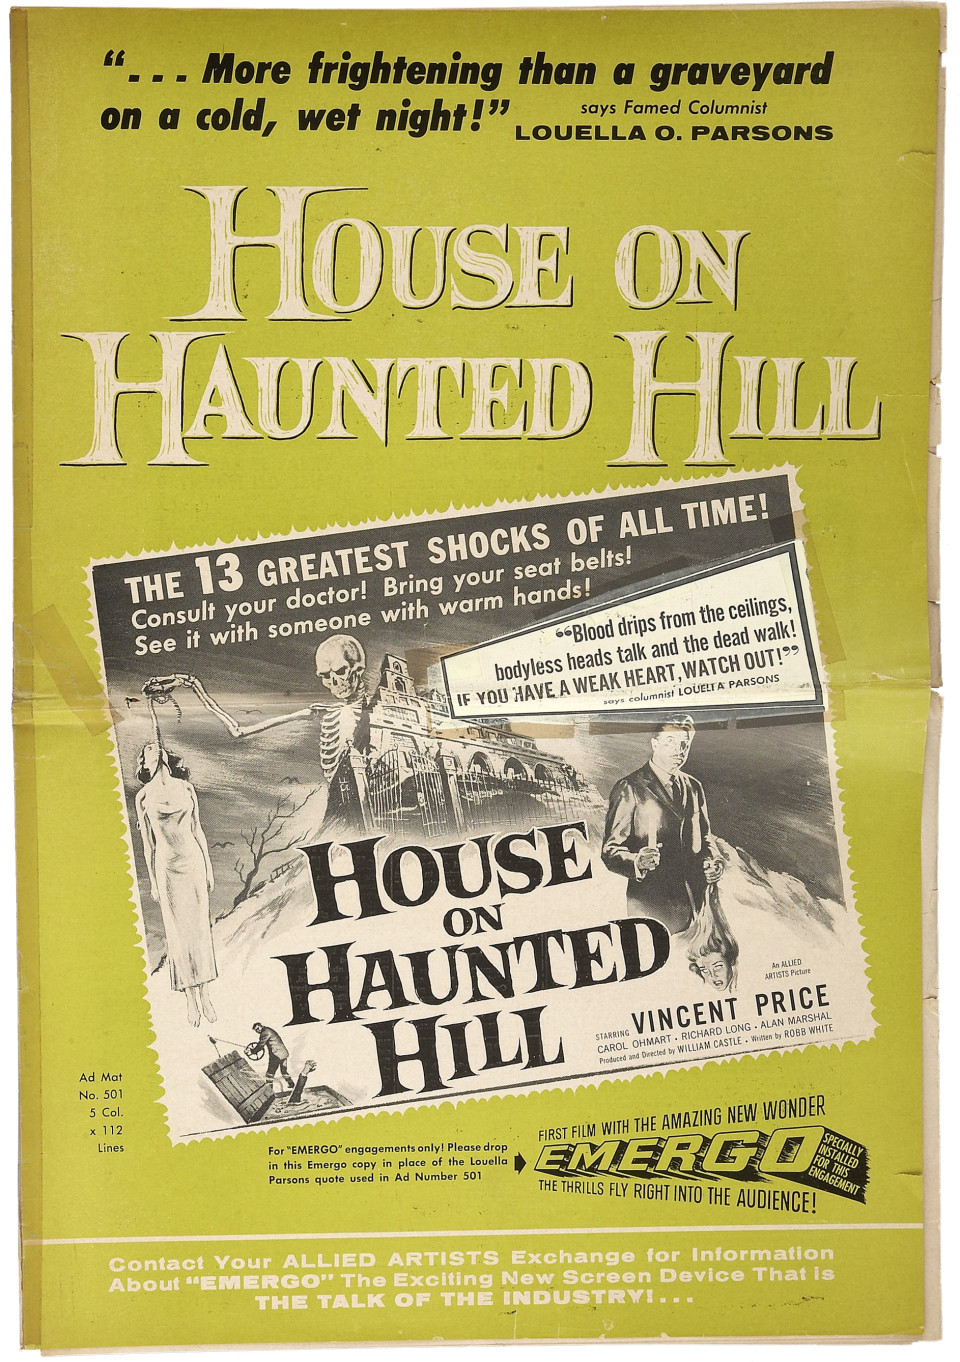 013b-001-1959-House on Haunted-pressbook-HA